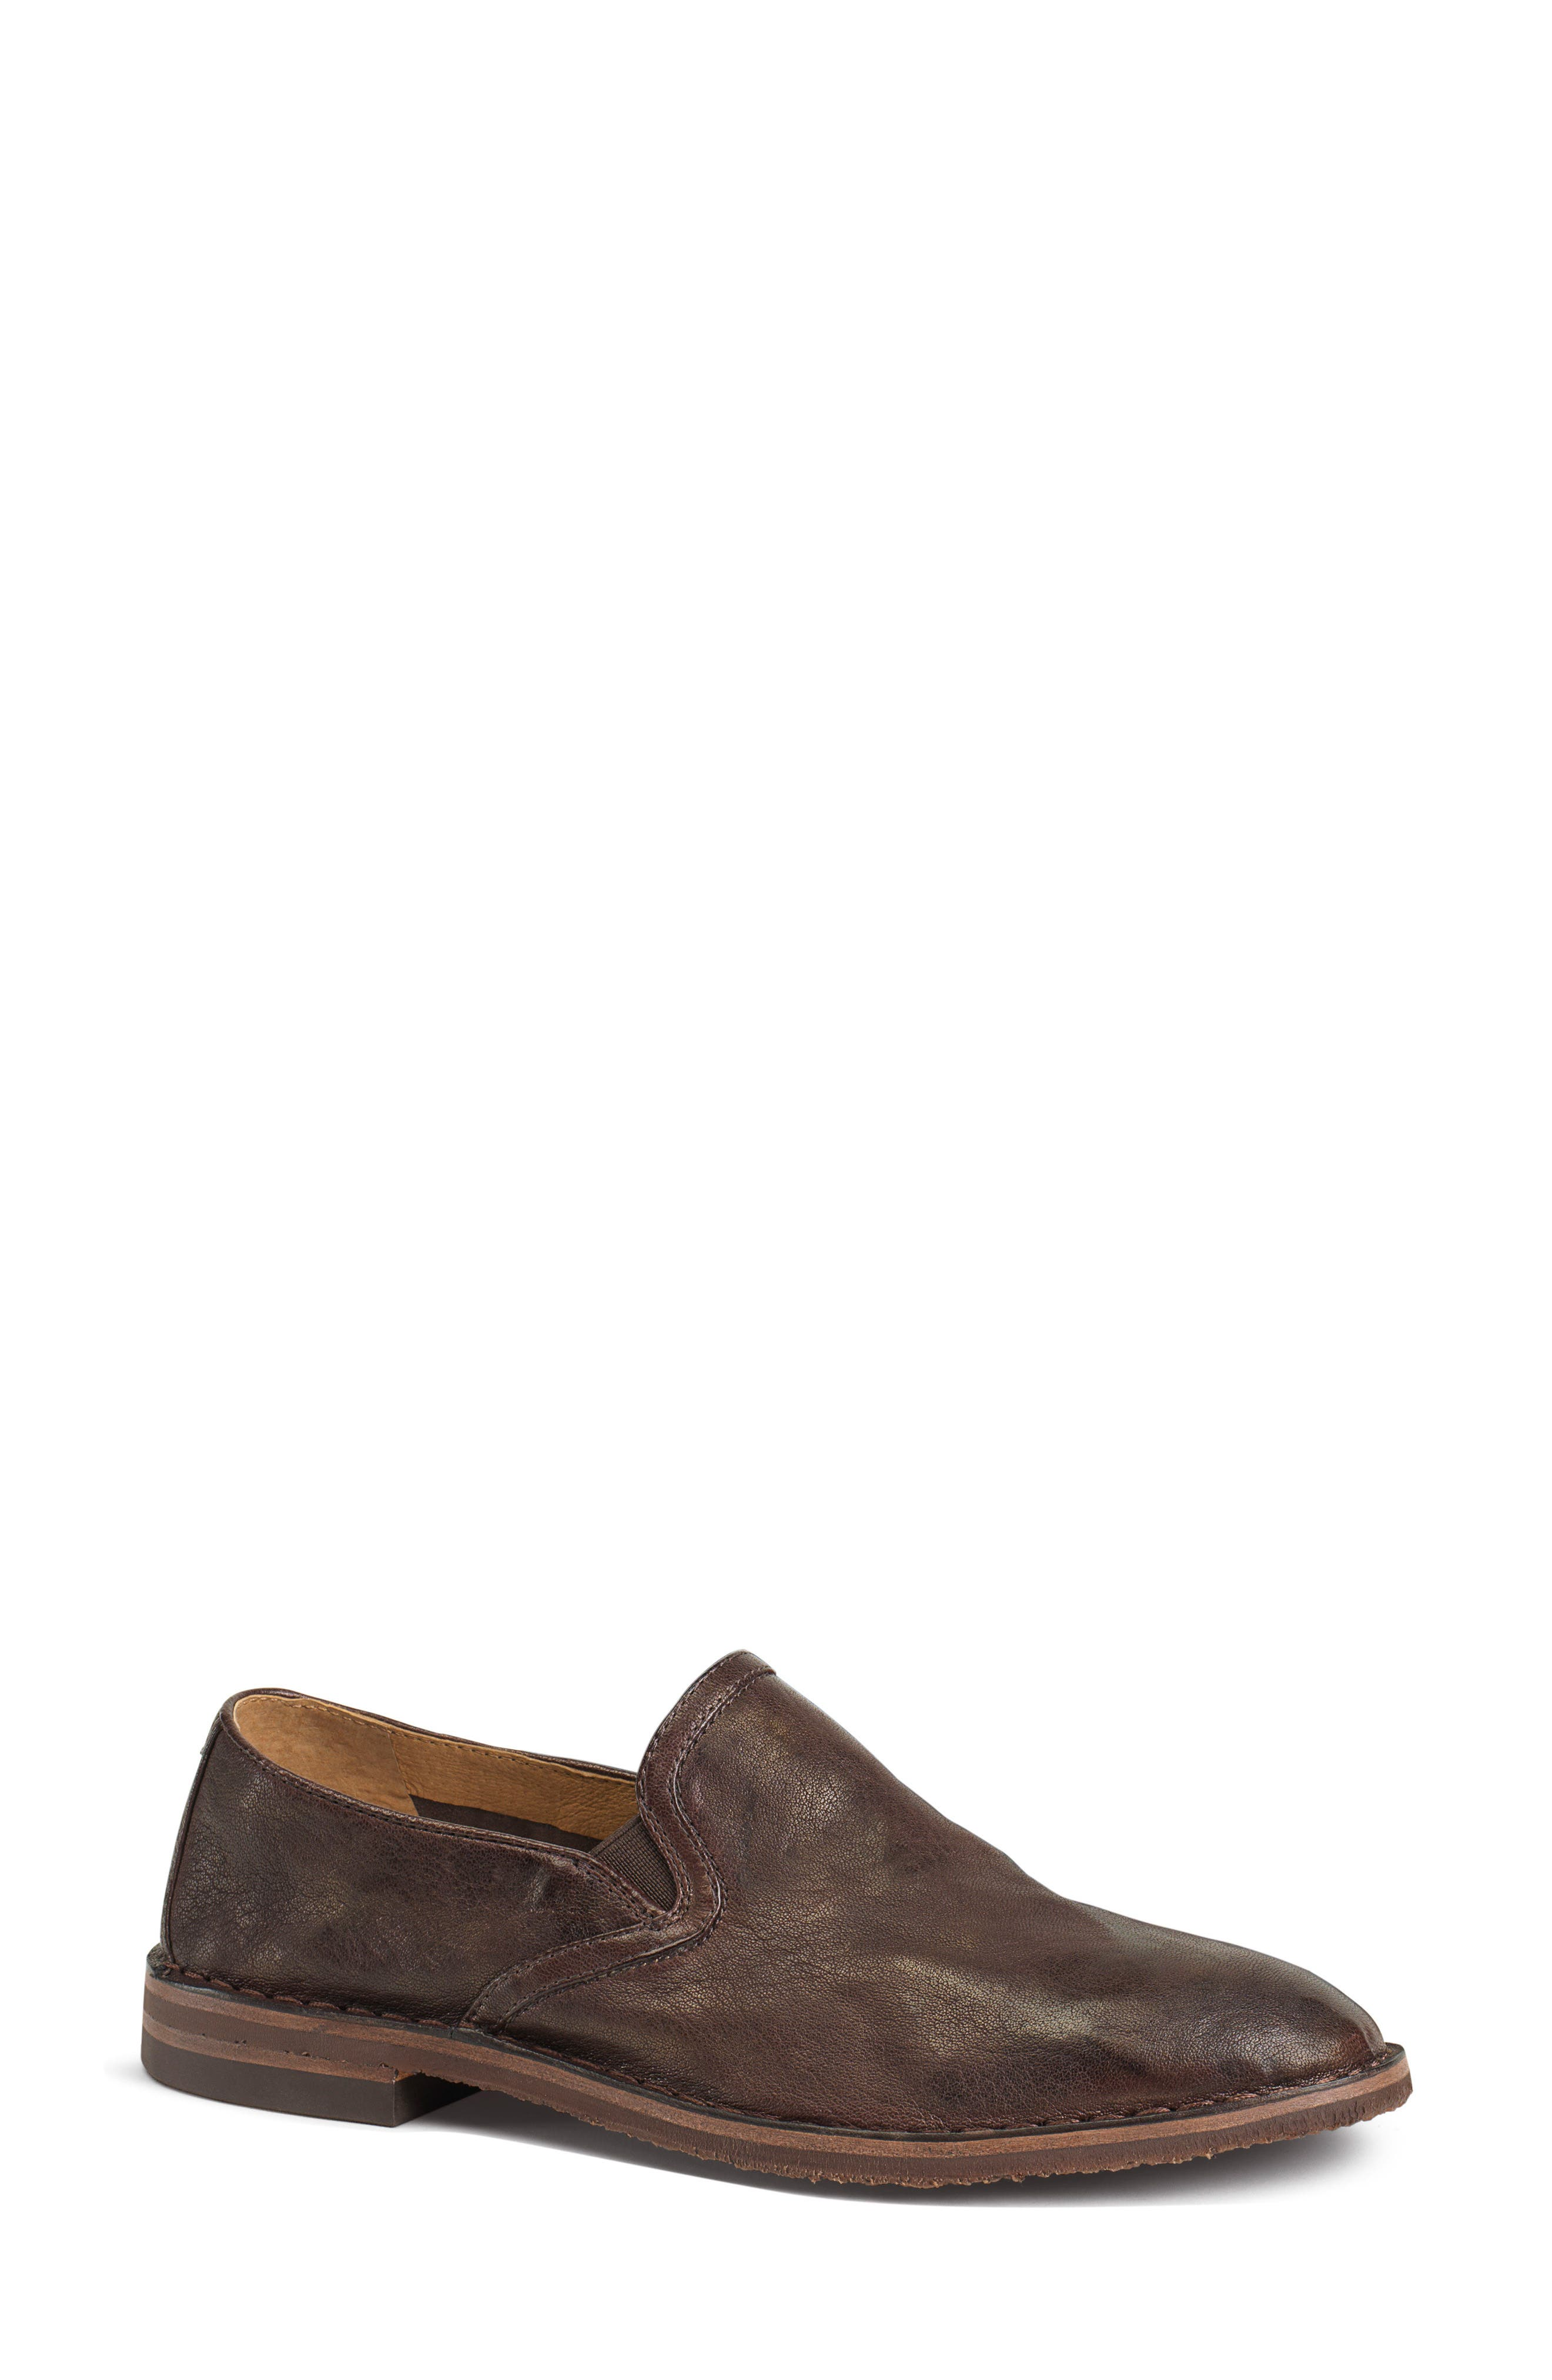 'Ali' Flat,                         Main,                         color, BROWN LEATHER